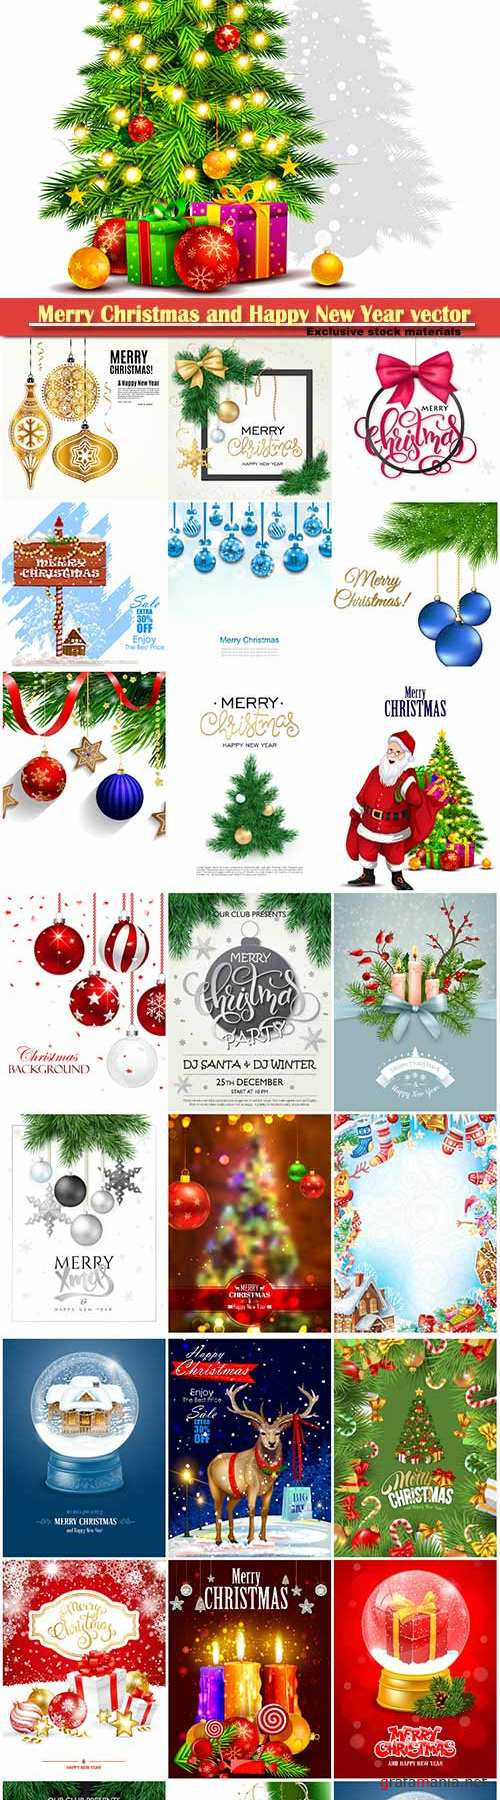 Merry Christmas and Happy New Year vector design # 33